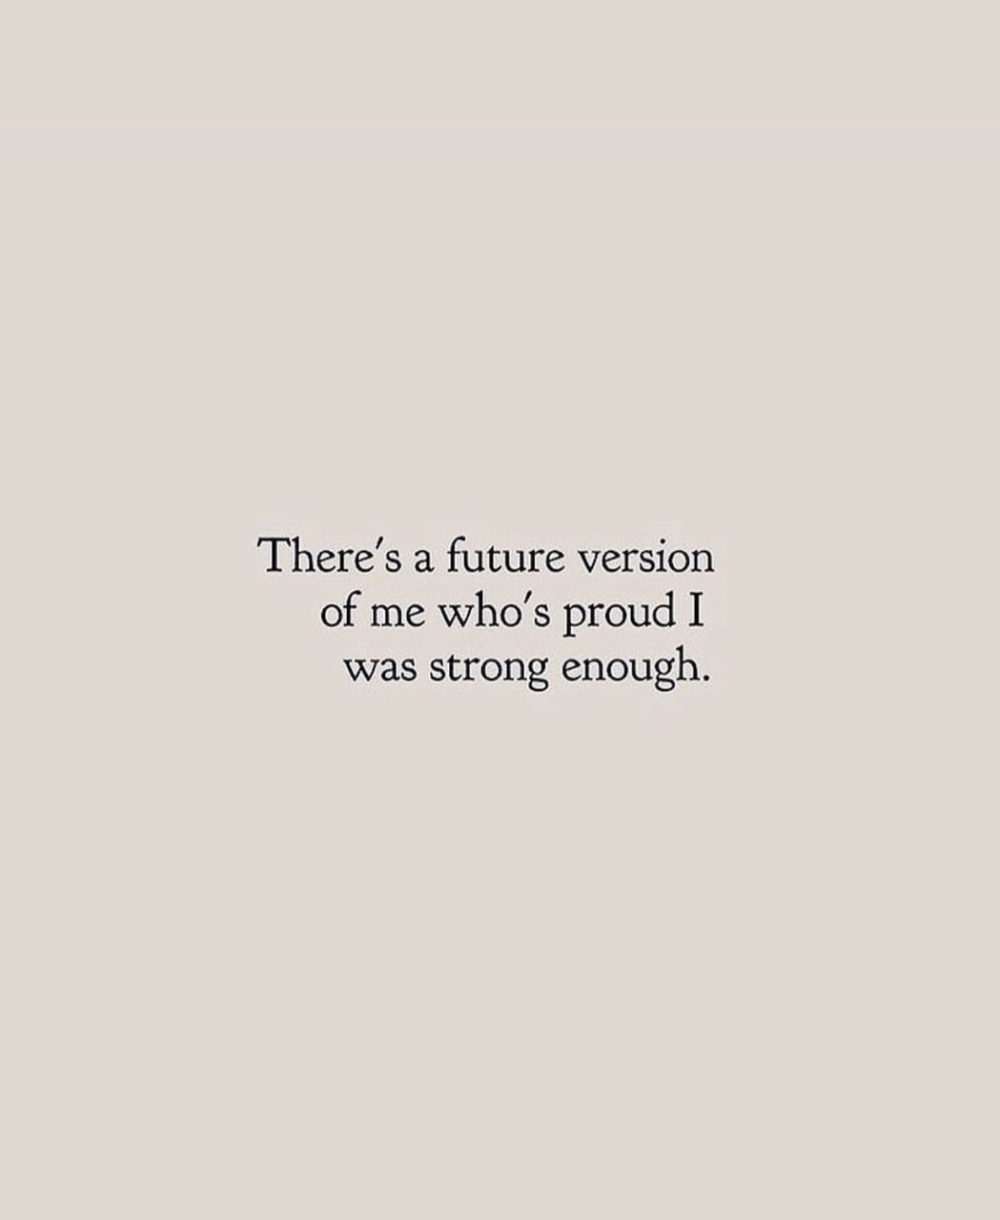 Image about quotes in kind words by 𝐂𝐲𝐧 on We Heart It